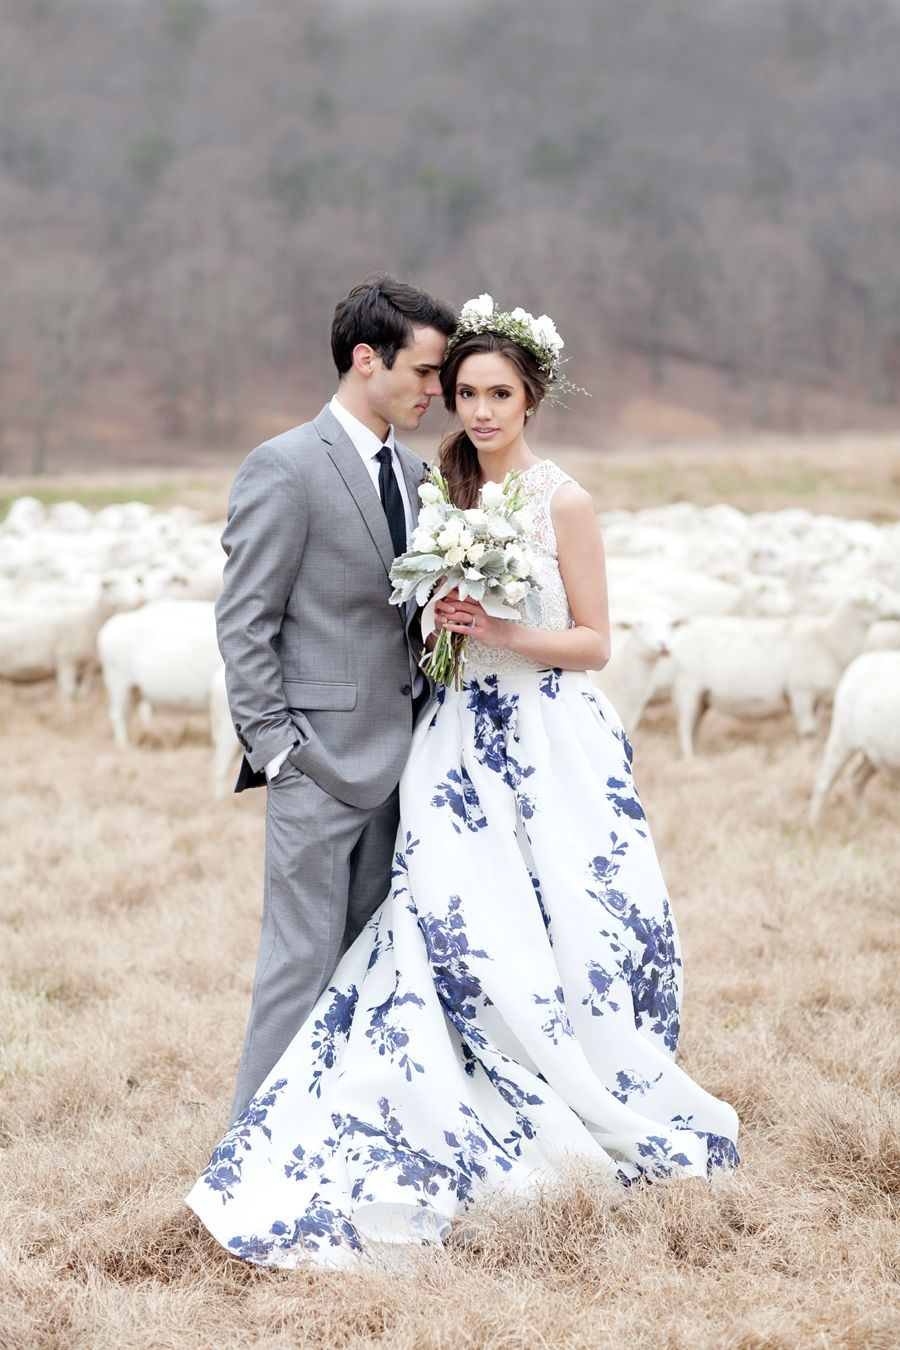 blue print wedding dress Image by Sleepy Fox Photography at Sweet ...